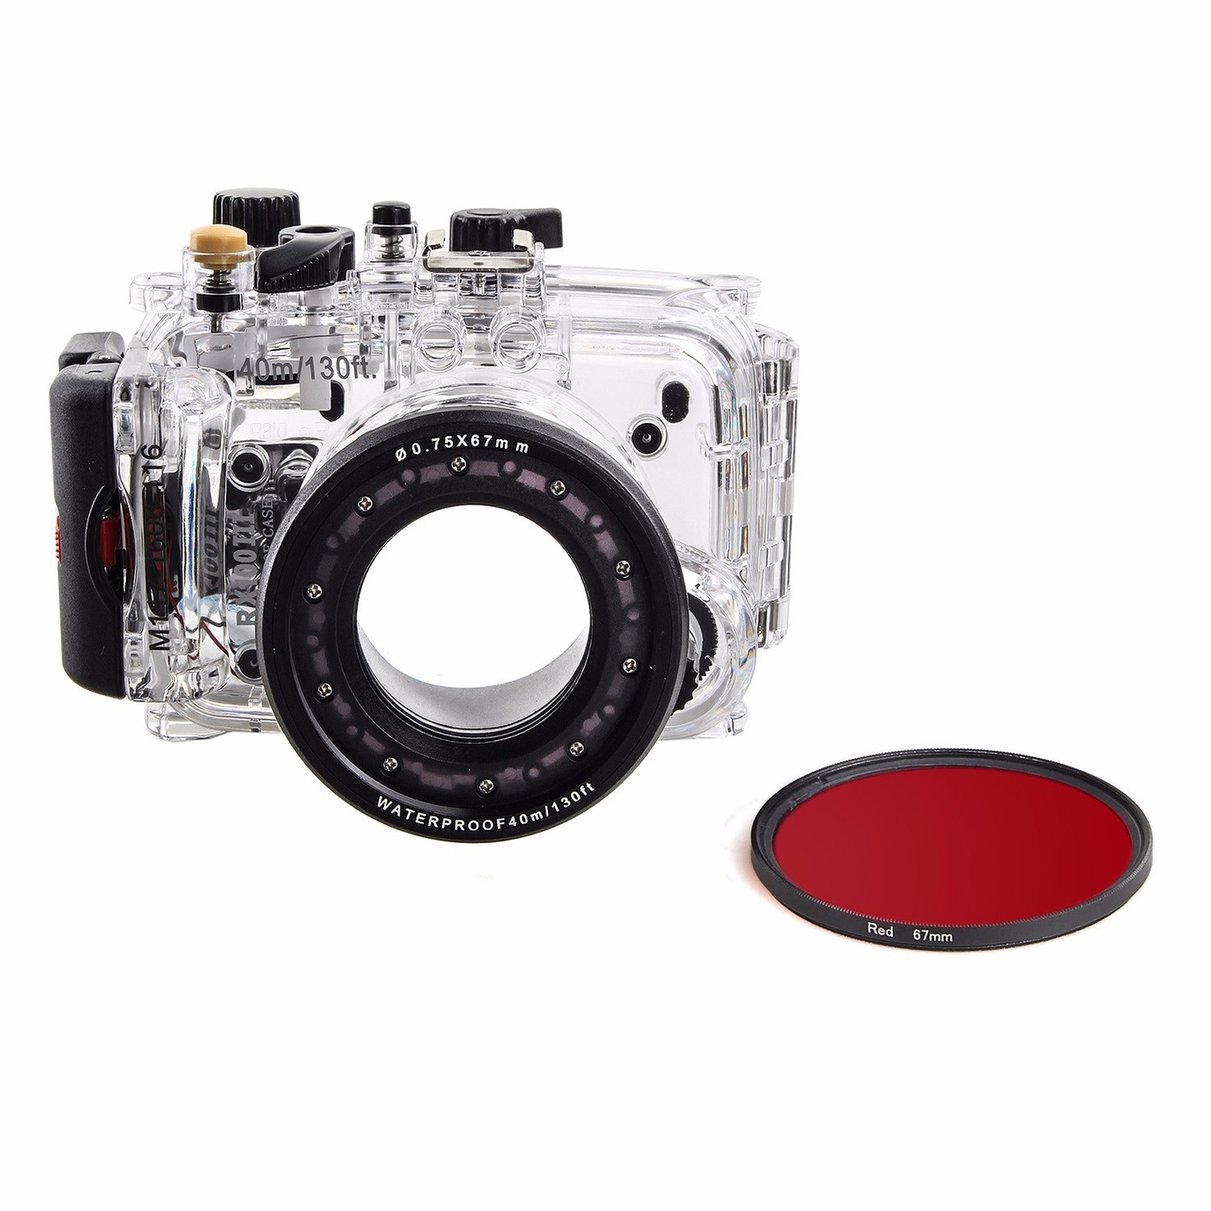 40m 130ft Waterproof Underwater Housing Diving Case For Sony DSC RX100 III RX100 M3 + 67mm Red Filter